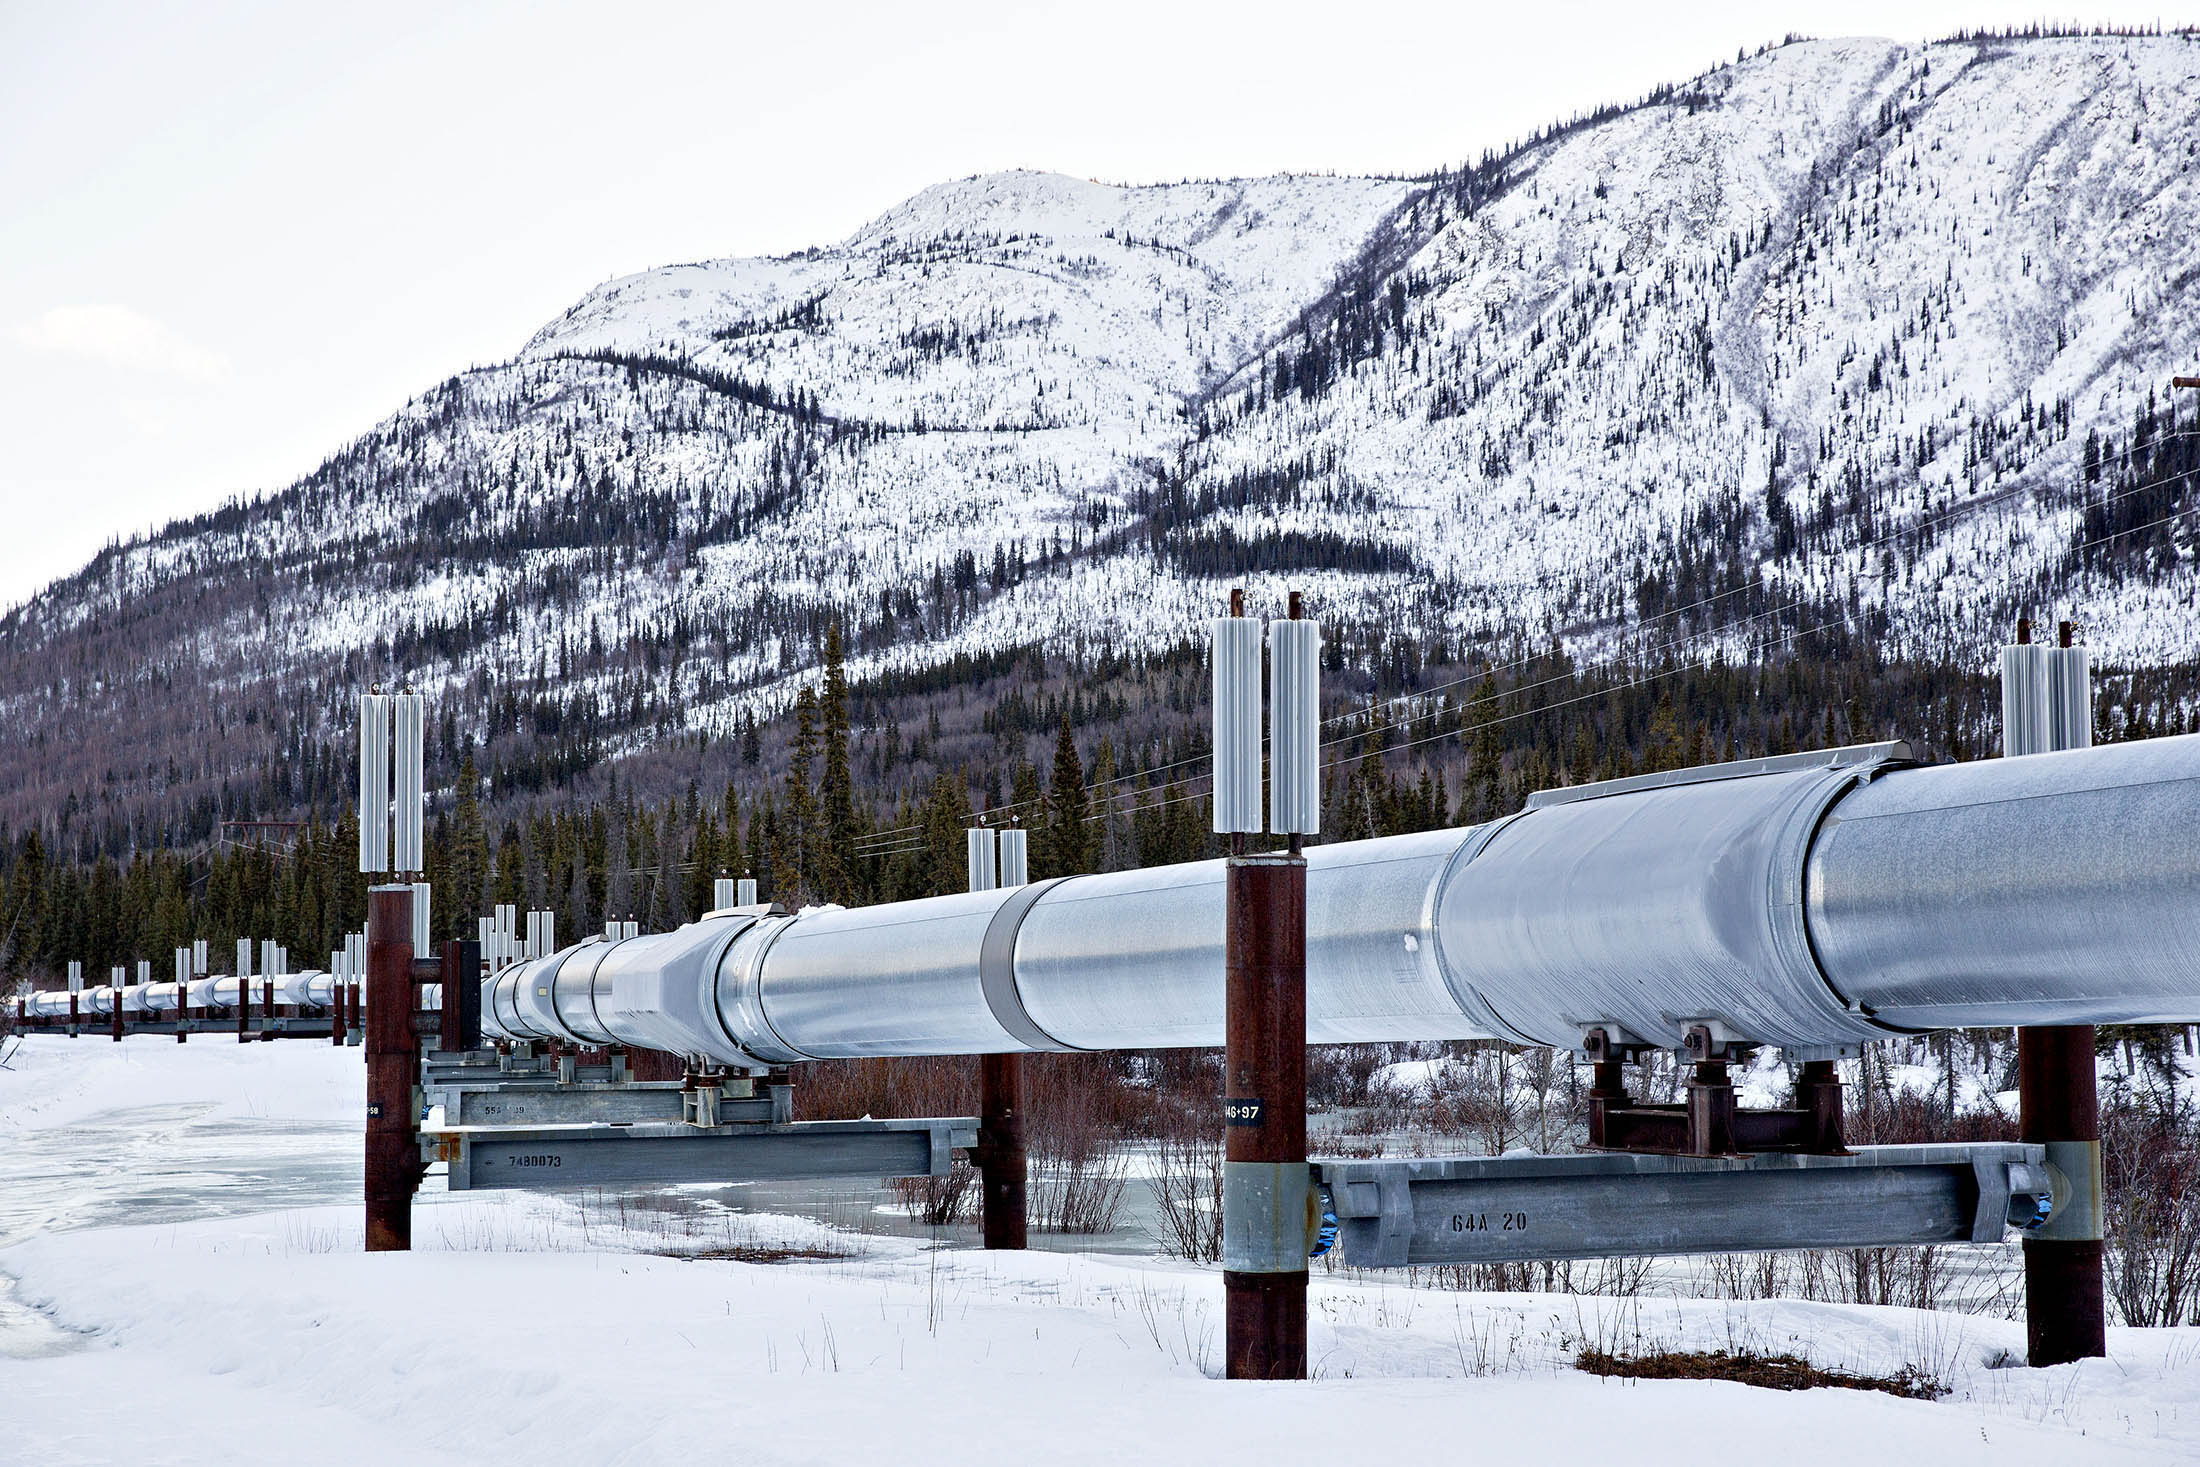 More Arctic oil flowed through the trans-Alaska pipeline this year than last